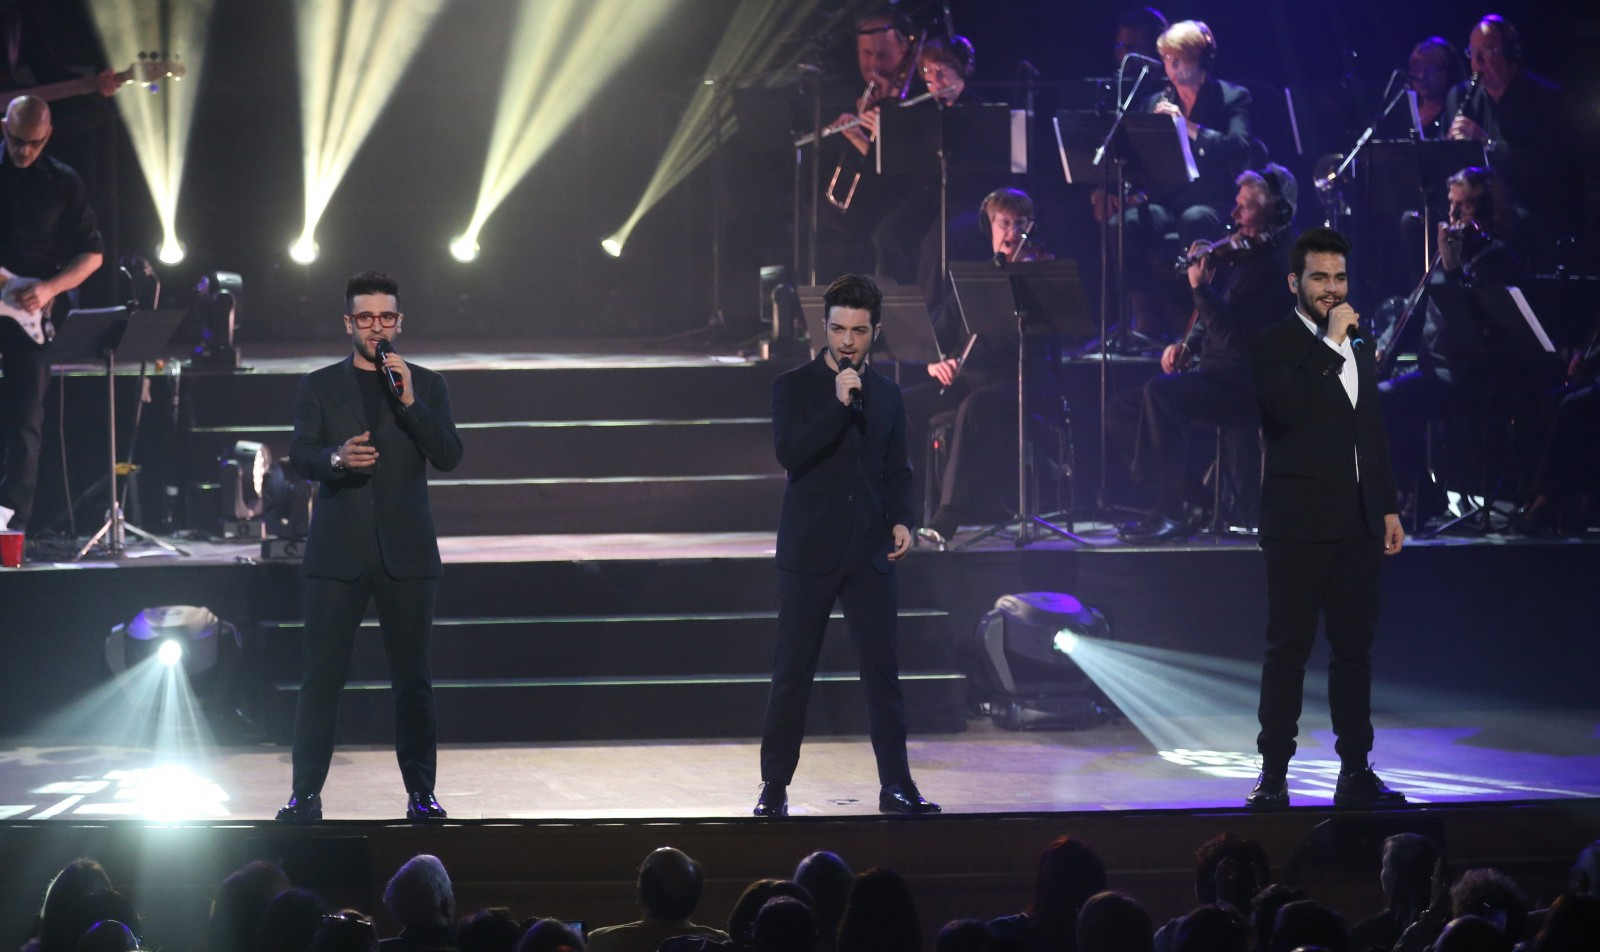 The Italian trio Il Volo – from left, tenor Piero Barone, baritone Gianluca Ginoble and tenor Ignazio Boschetto – gave the Kleinhans Music Hall audience an evening that blended Italian love songs with some American classics. (Sharon Cantillon/Buffalo News)